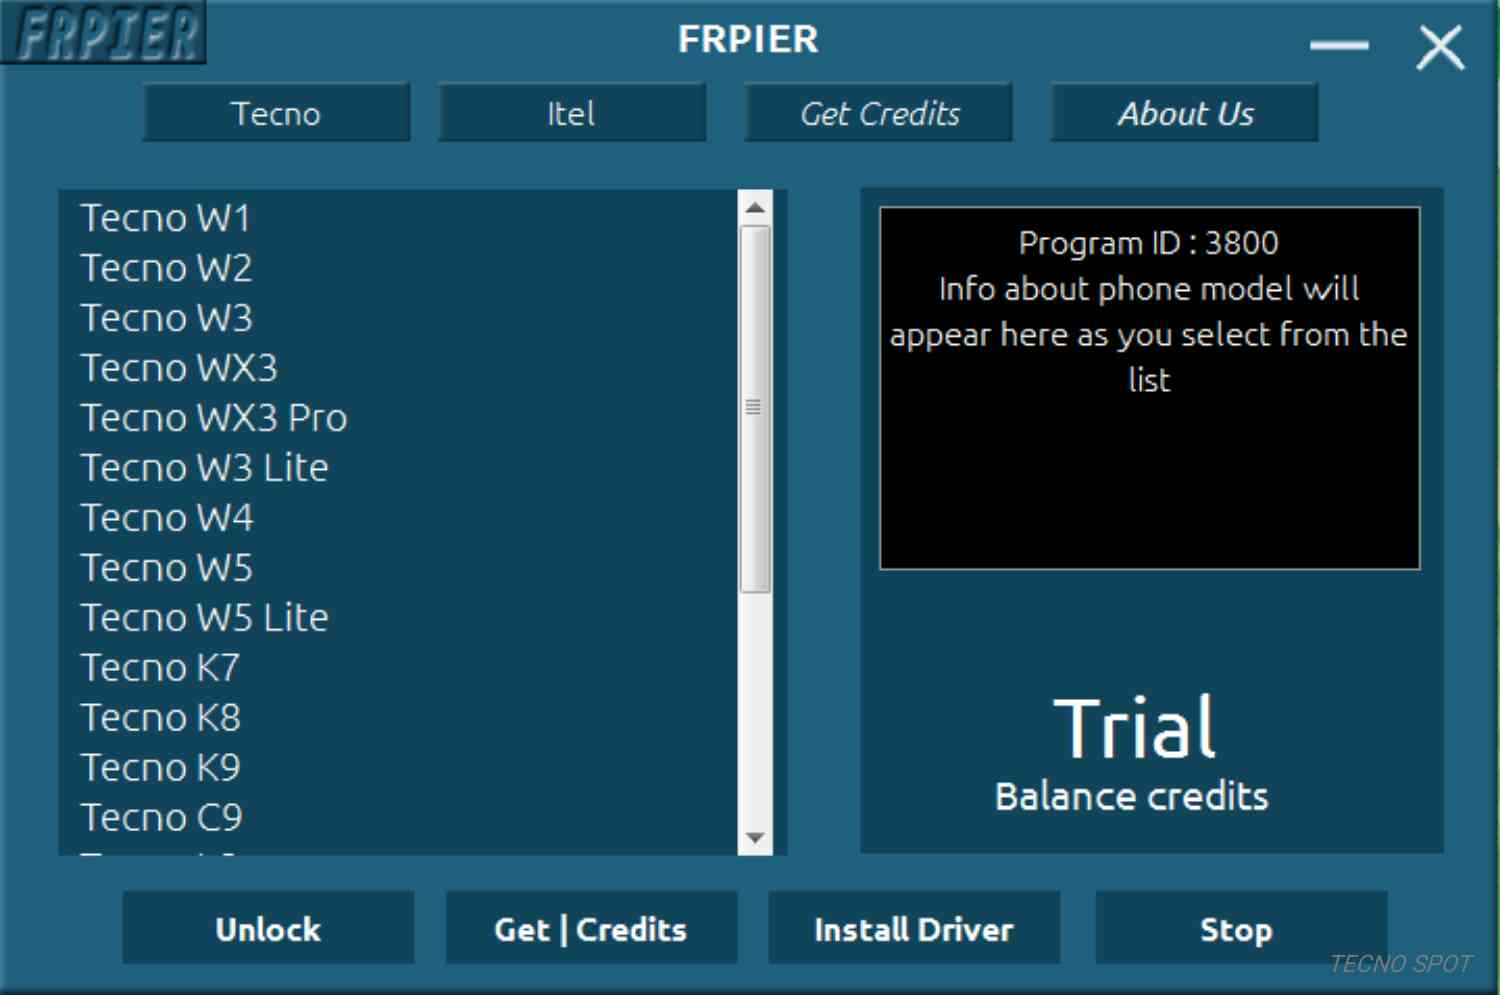 FRPIER TOOL FROM MICROFENSHO | TEAM THE TOOL THAT GETS RID OF FRP